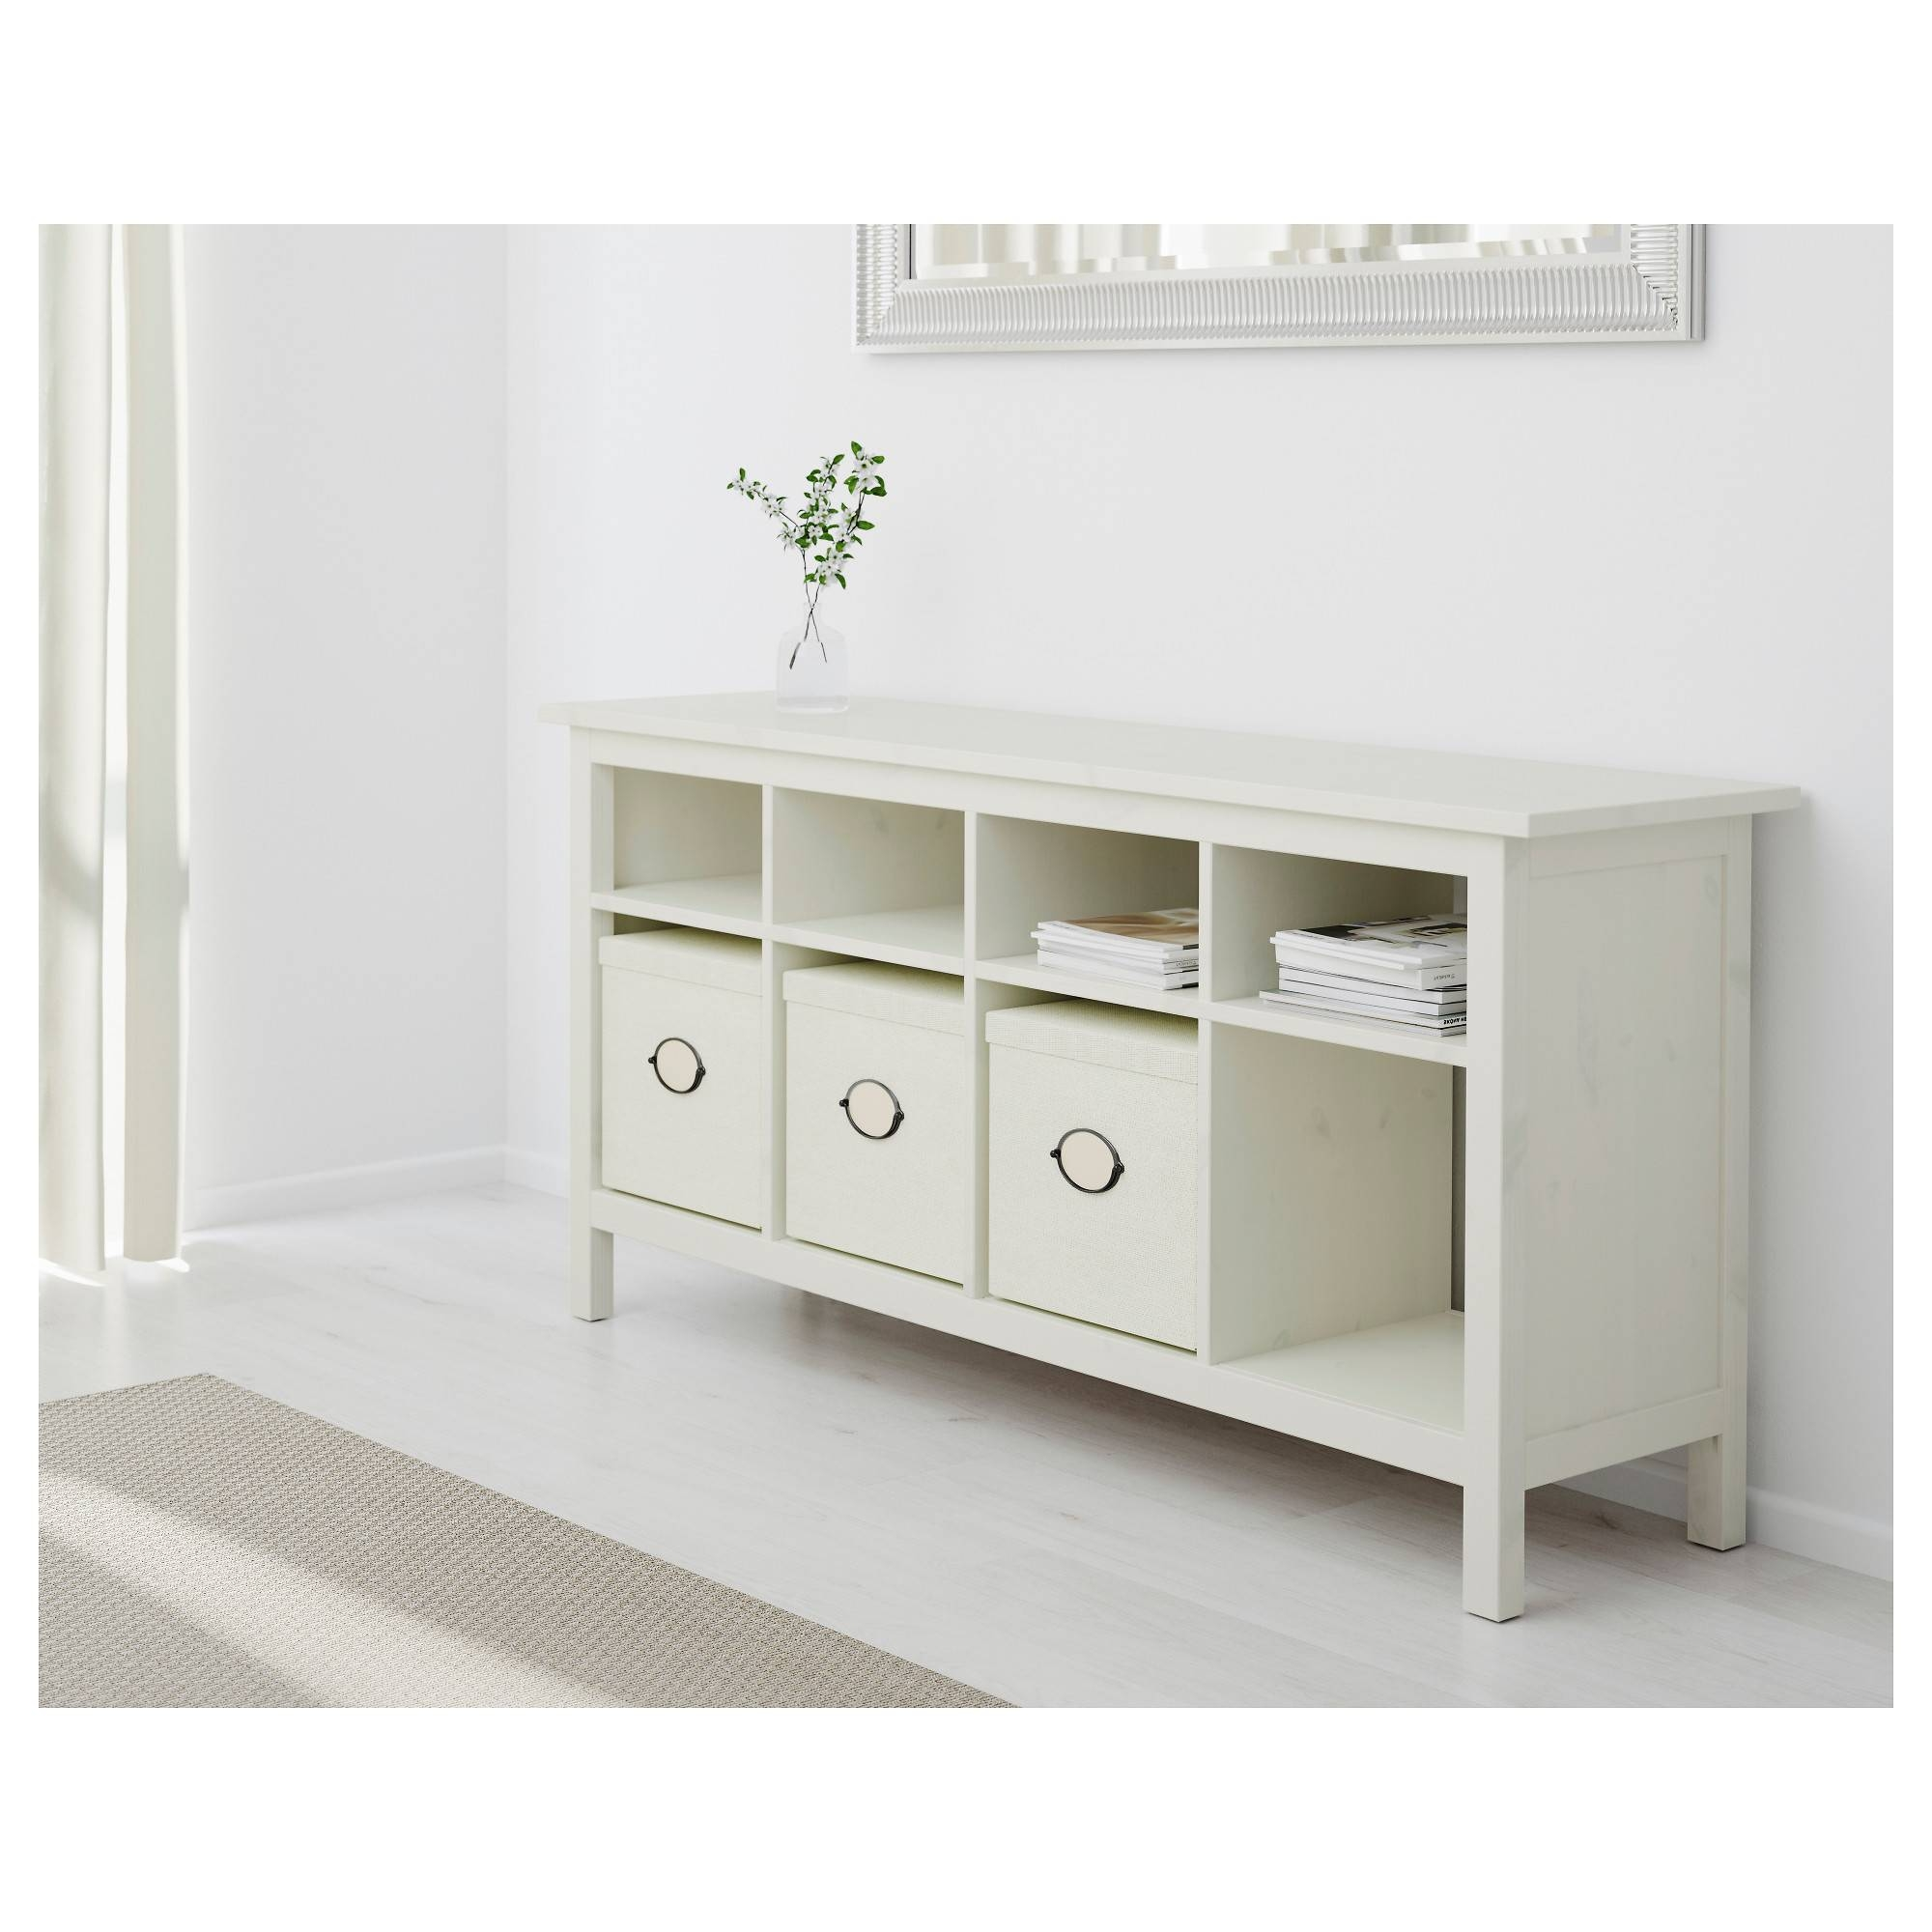 Hemnes Console Table White Stain 157X40 Cm – Ikea Within Ikea Hemnes Sideboards (View 3 of 15)